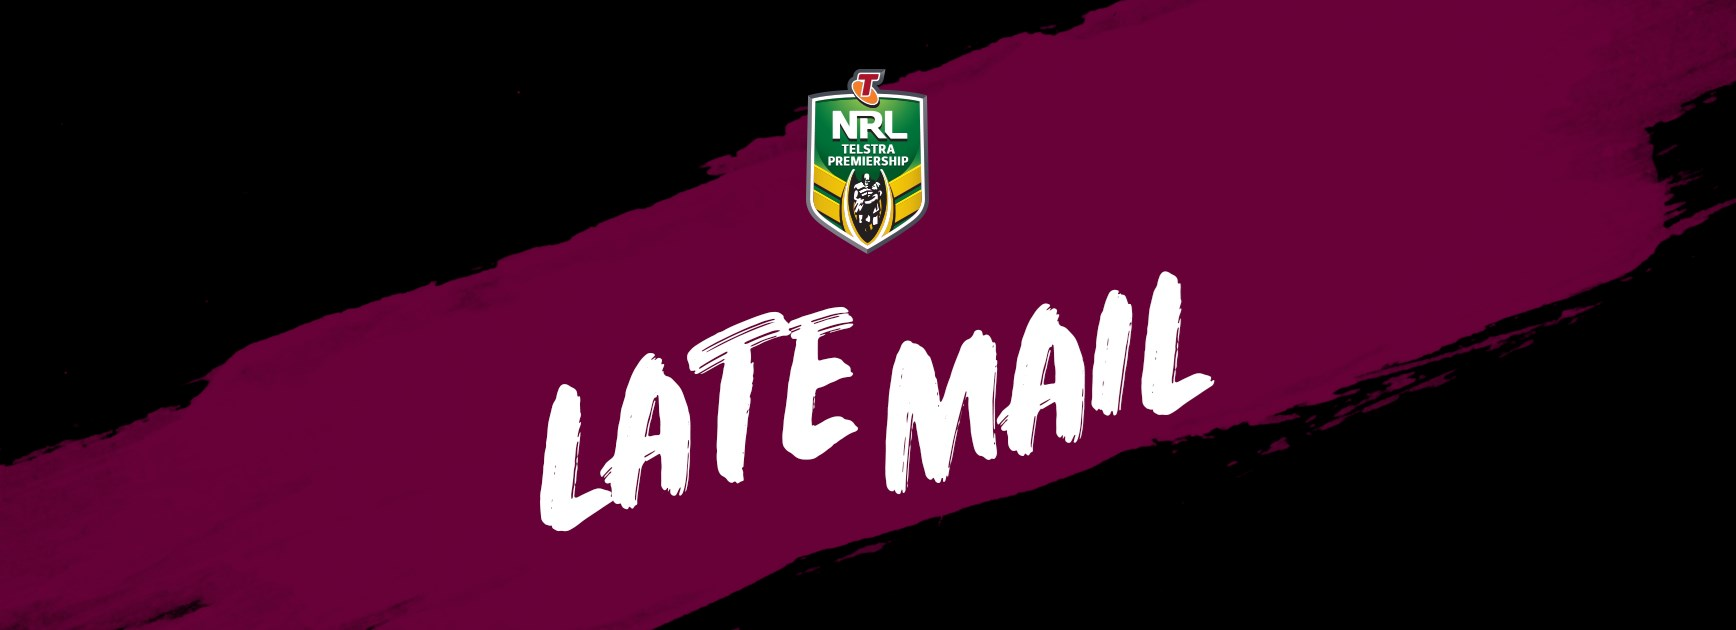 NRL Late Mail - Round 11